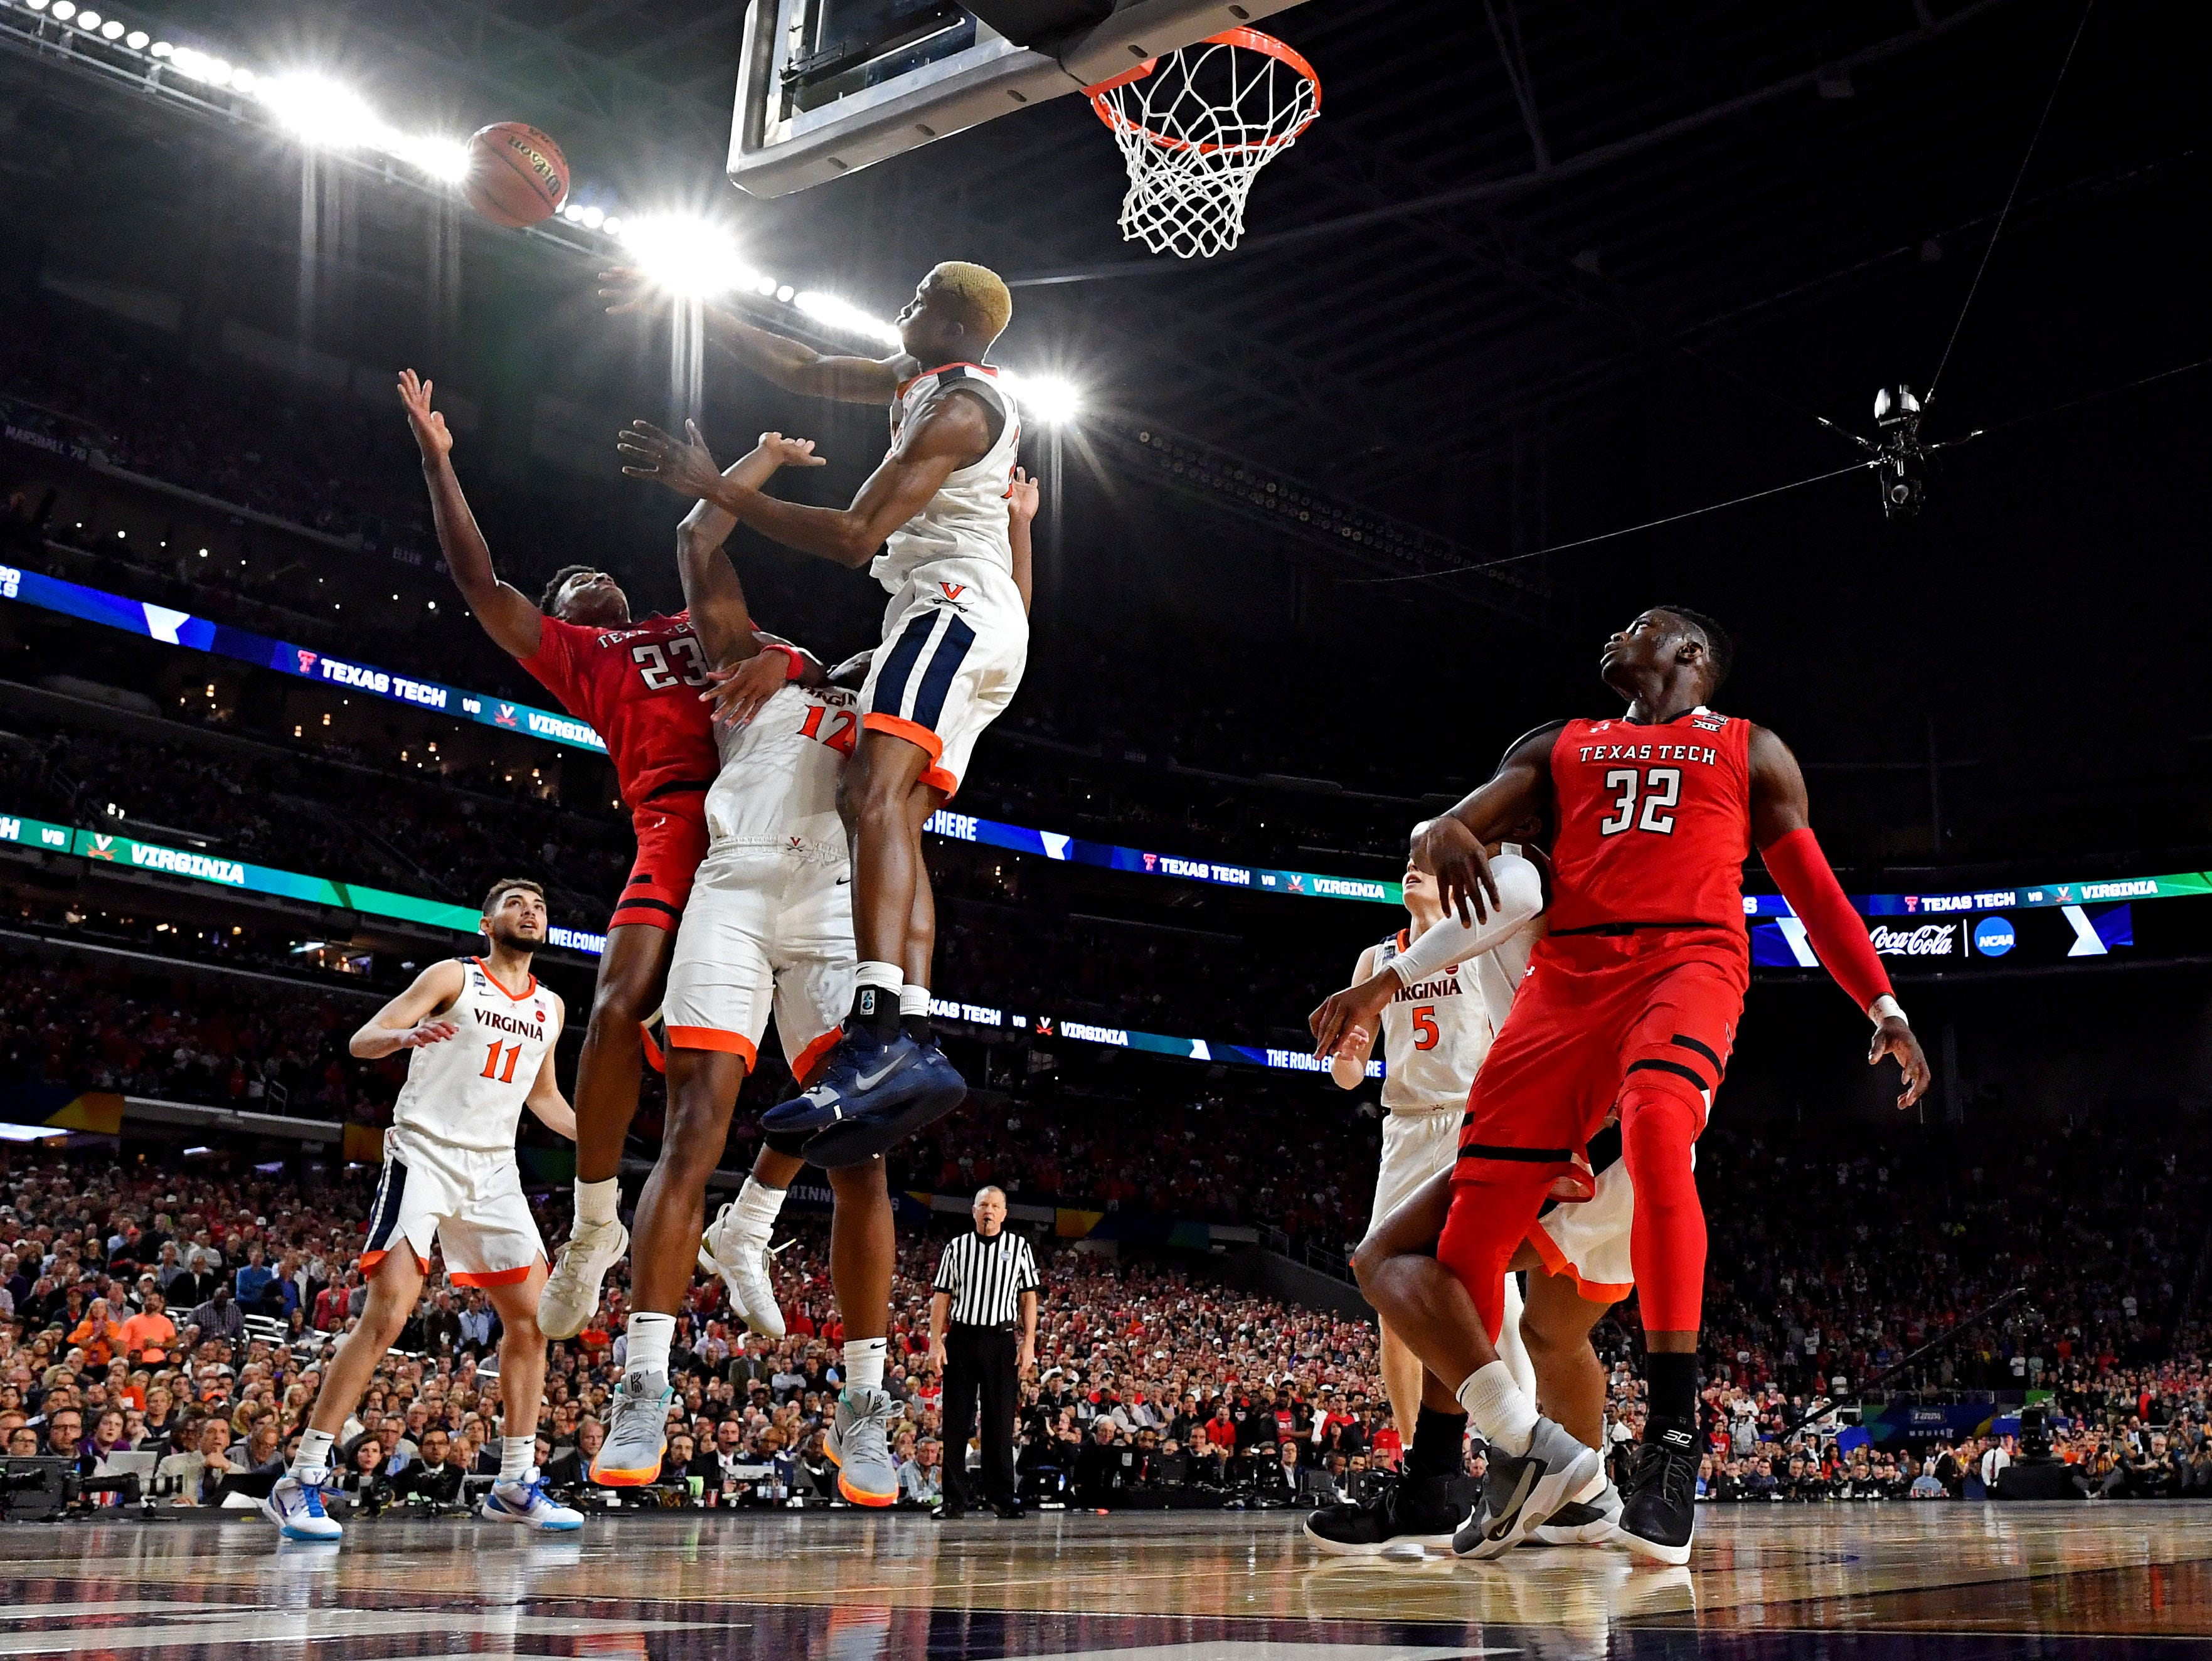 Apr 8, 2019; Minneapolis, MN, USA; Virginia Cavaliers forward Mamadi Diakite (25) blocks the shot of Texas Tech Red Raiders guard Jarrett Culver (23) during overtime in the championship game of the 2019 men's Final Four at US Bank Stadium. Mandatory Credit: Bob Donnan-USA TODAY Sports